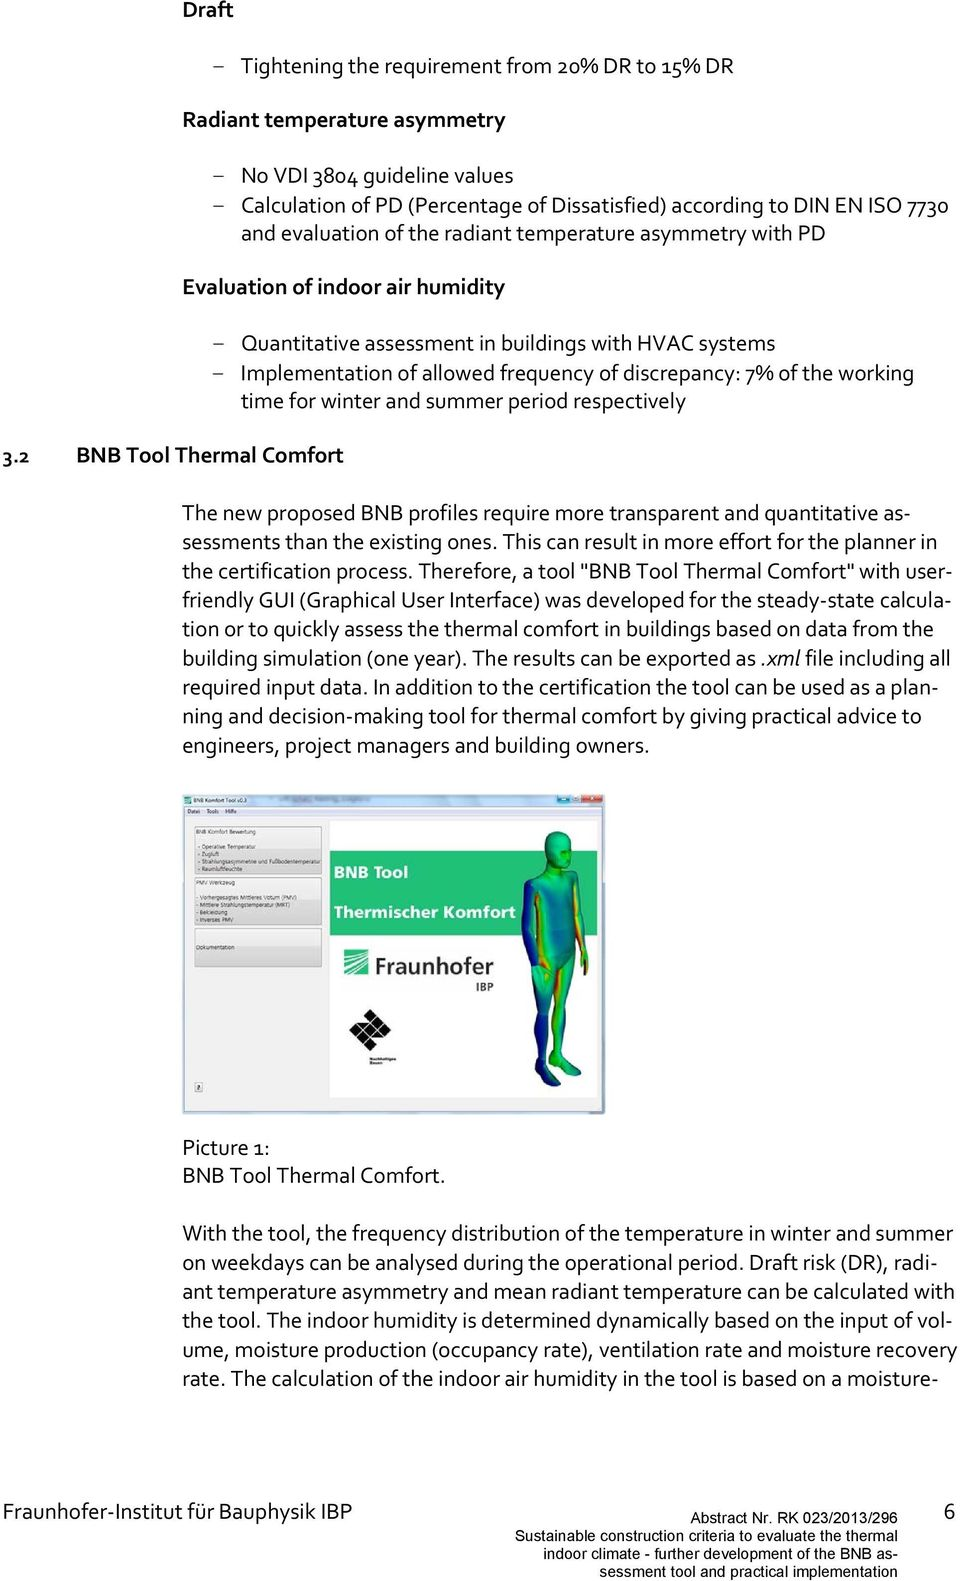 2 BNB Tool Thermal Comfort - Quantitative assessment in buildings with HVAC systems - Implementation of allowed frequency of discrepancy: 7% of the working time for winter and summer period